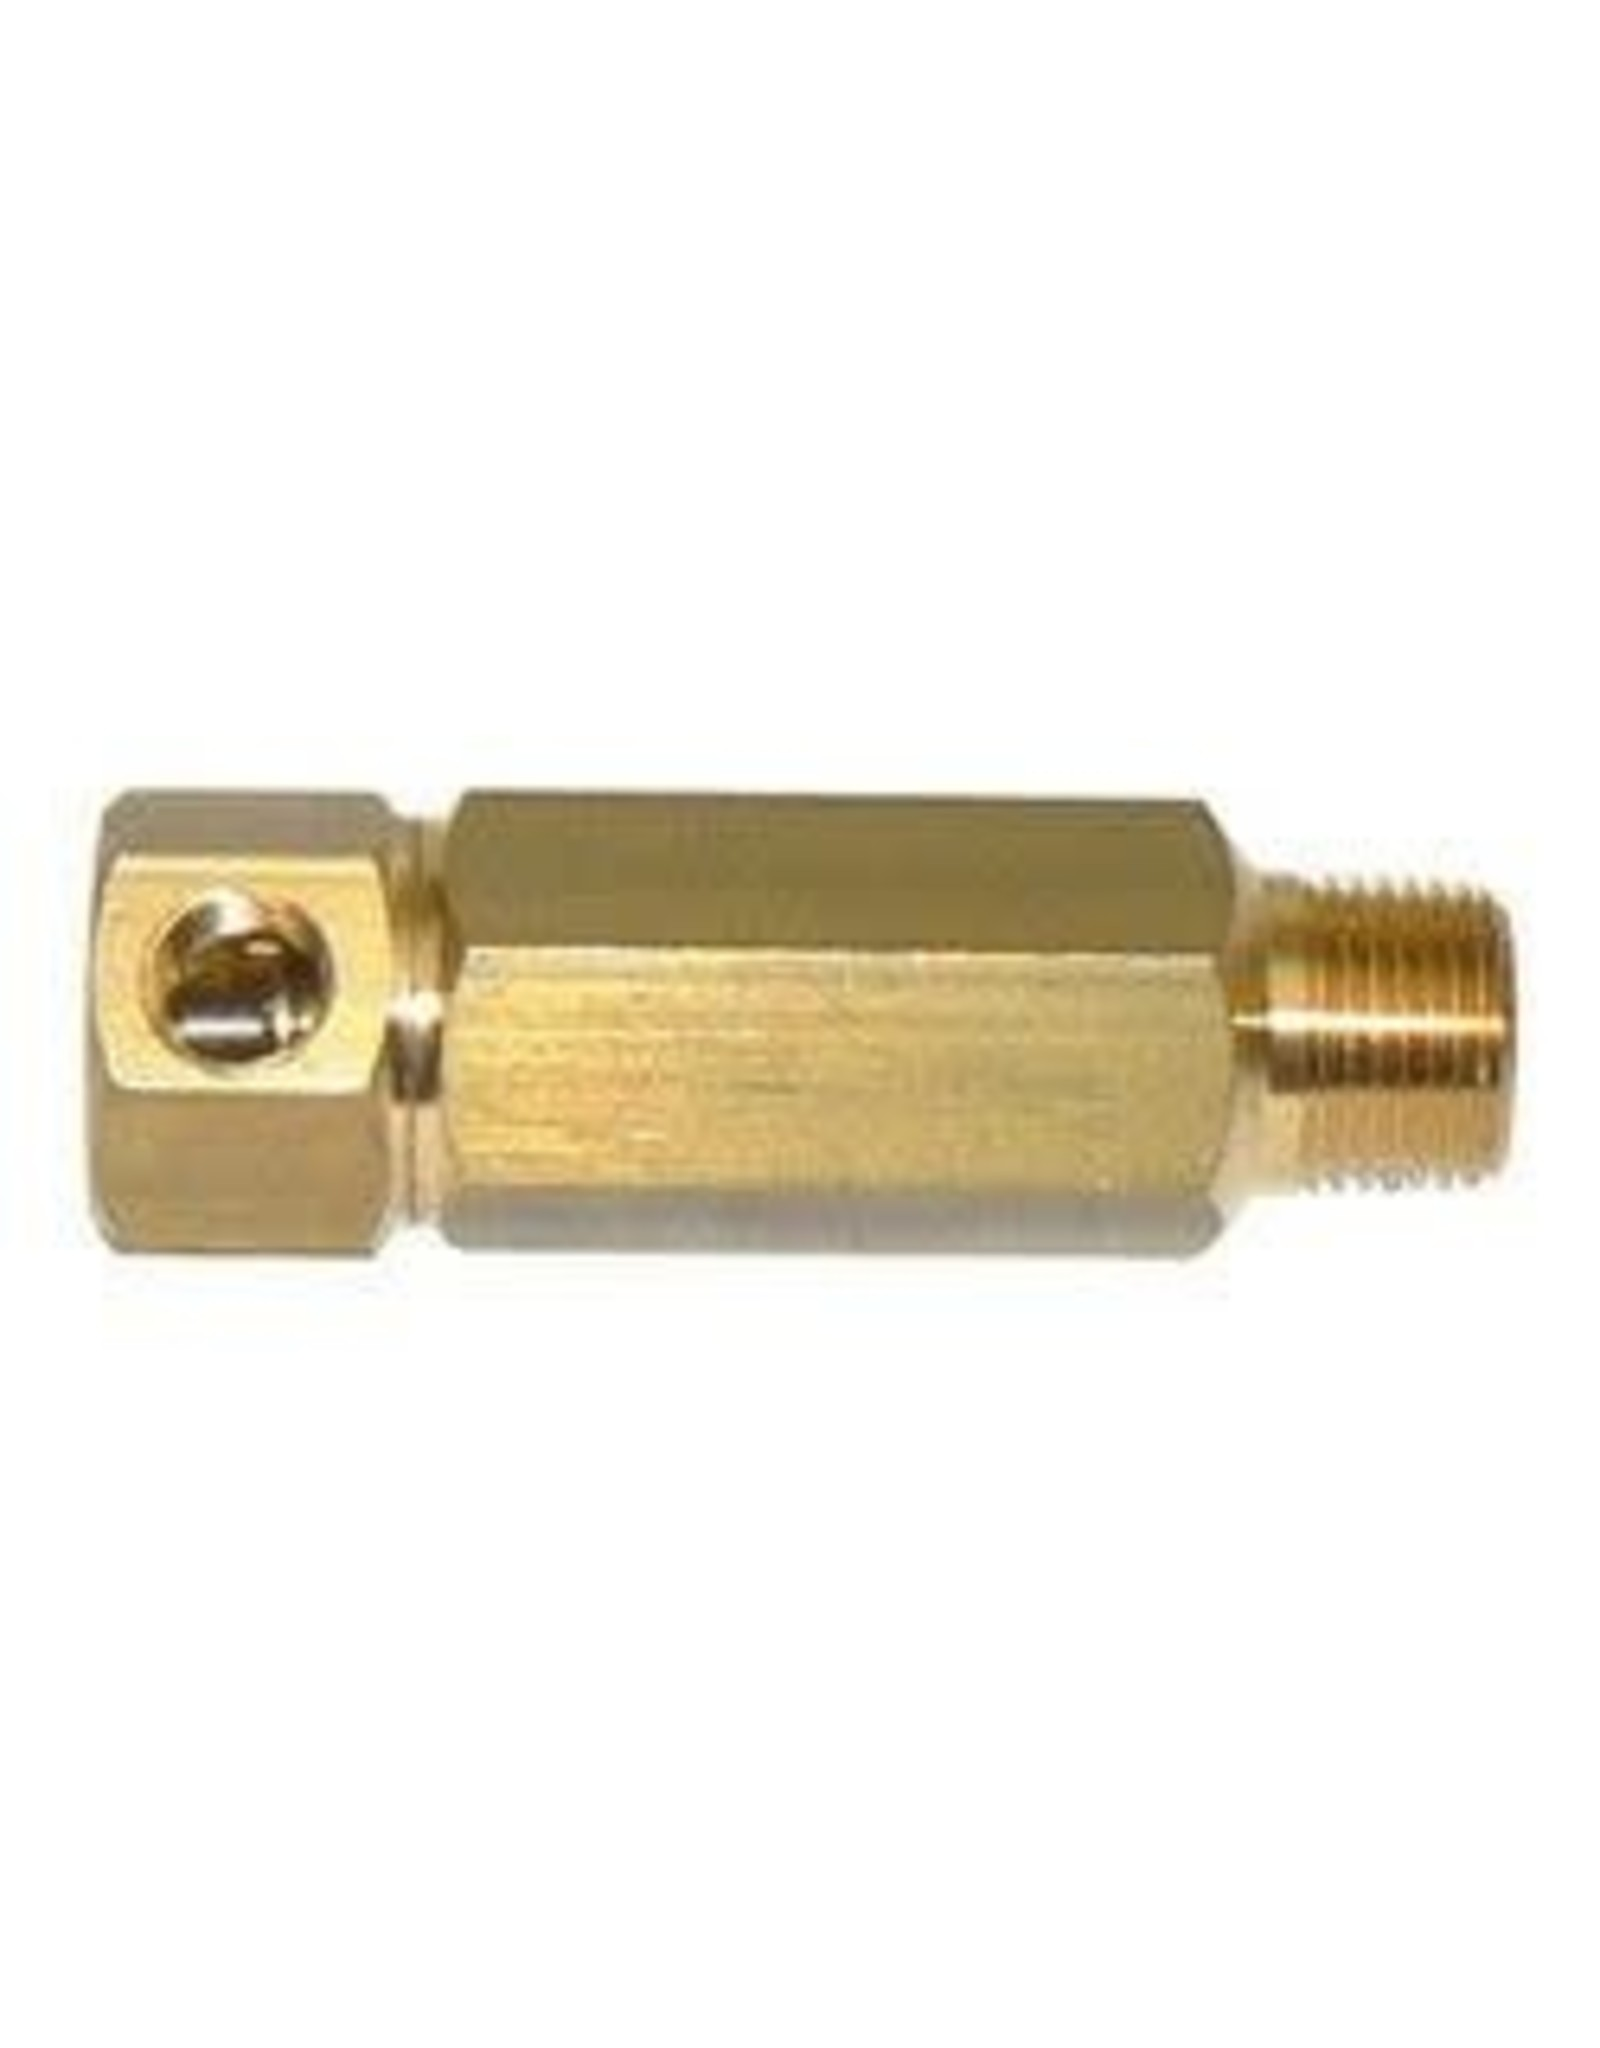 """Thermo Valve 7172 cat pump 1/2"""" Inlet Port 180 Degrees F"""